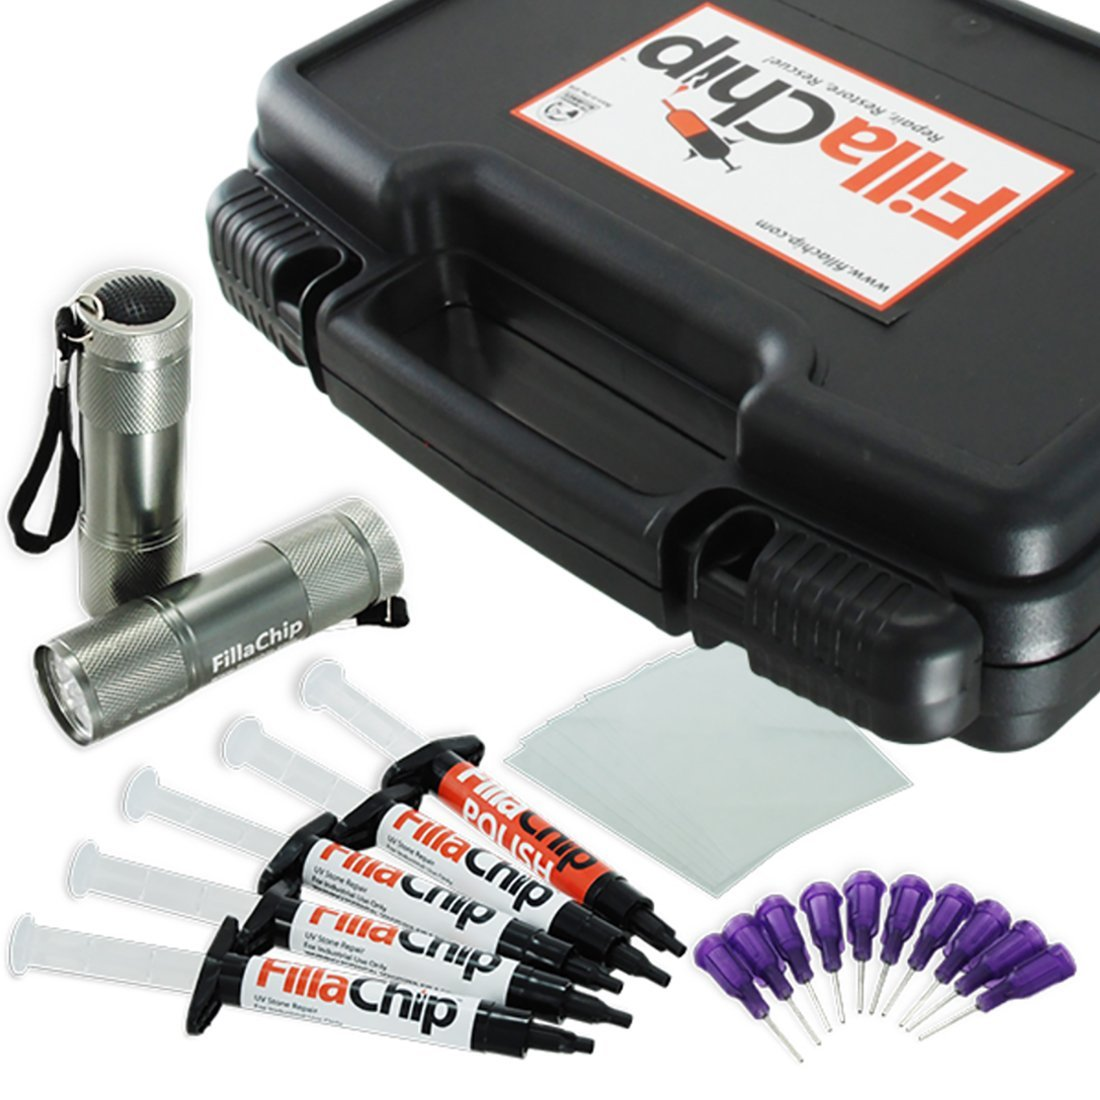 FillaChip Chip Stone Repair System by FillaChip (Image #1)